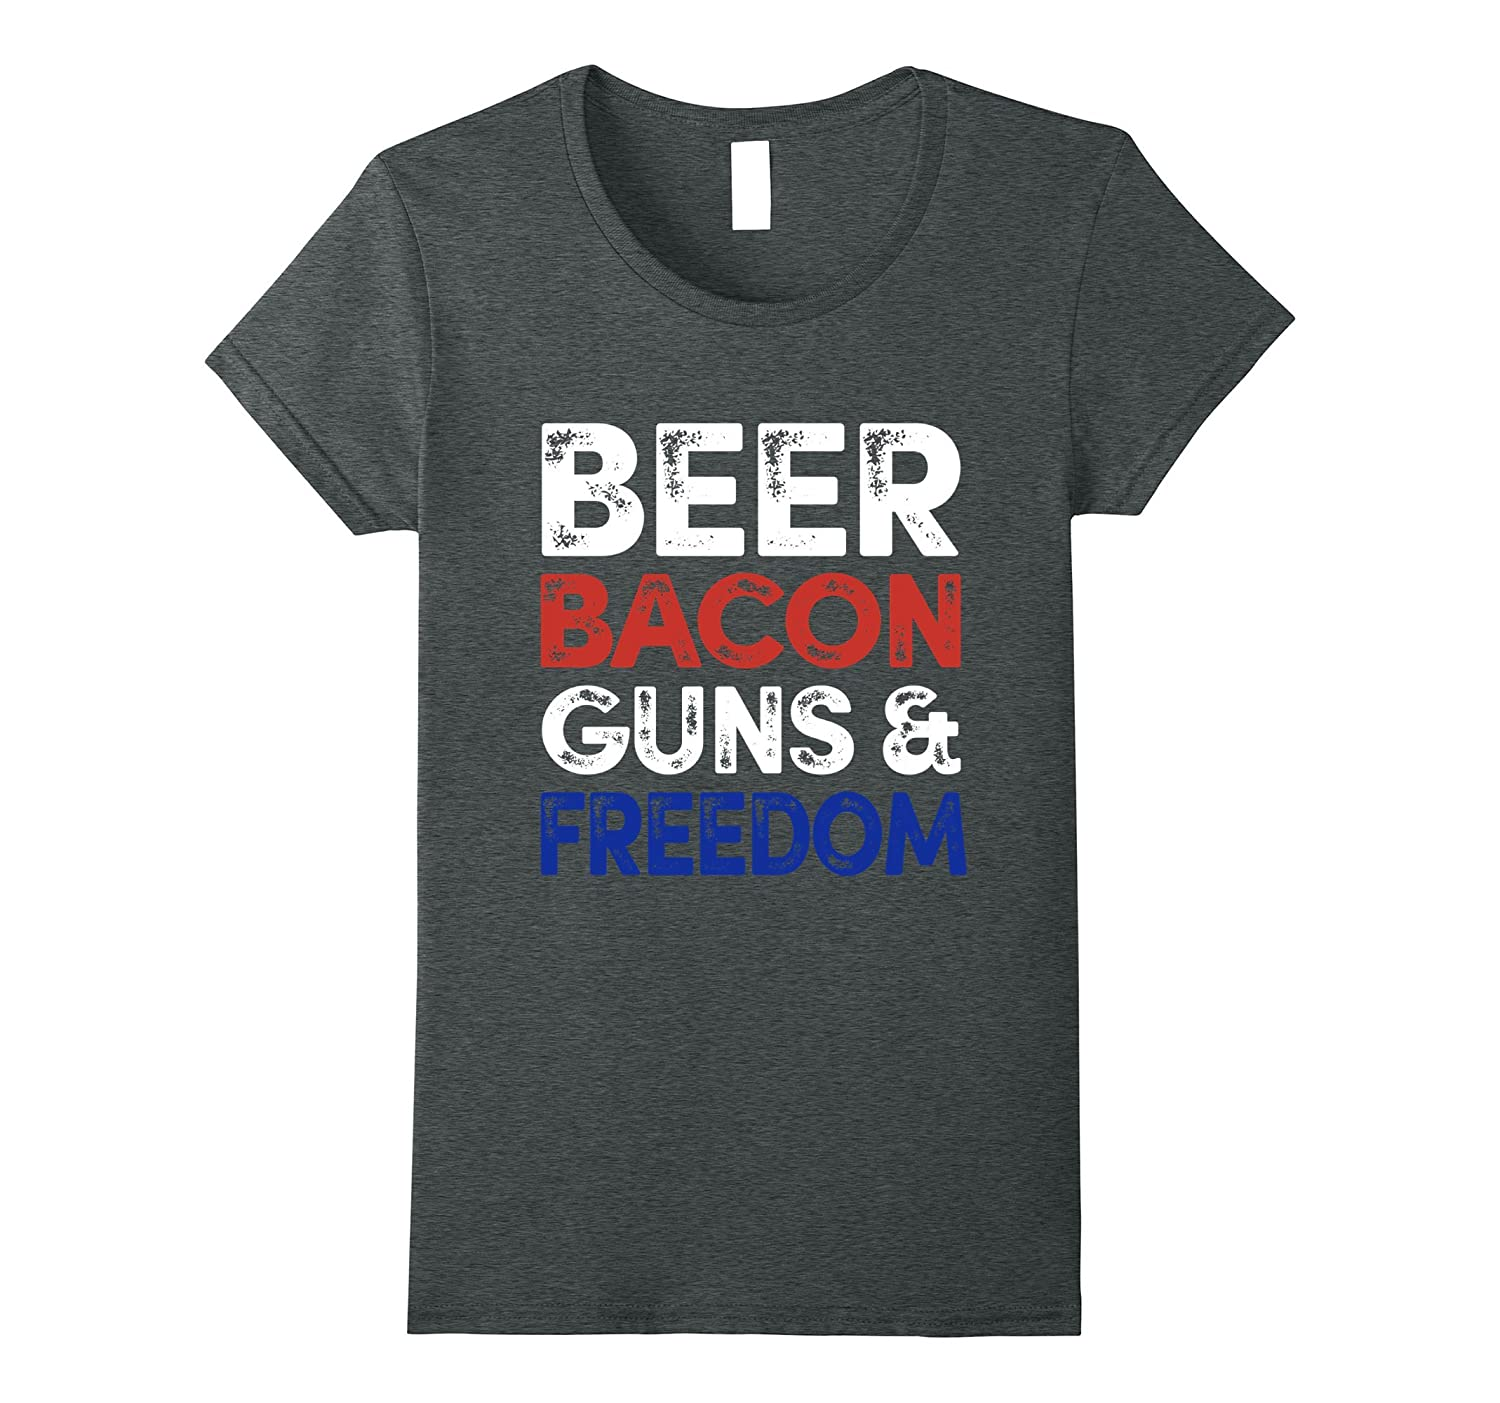 Beer Bacon Guns And Freedom T-Shirt Fourth of July Gift Tee